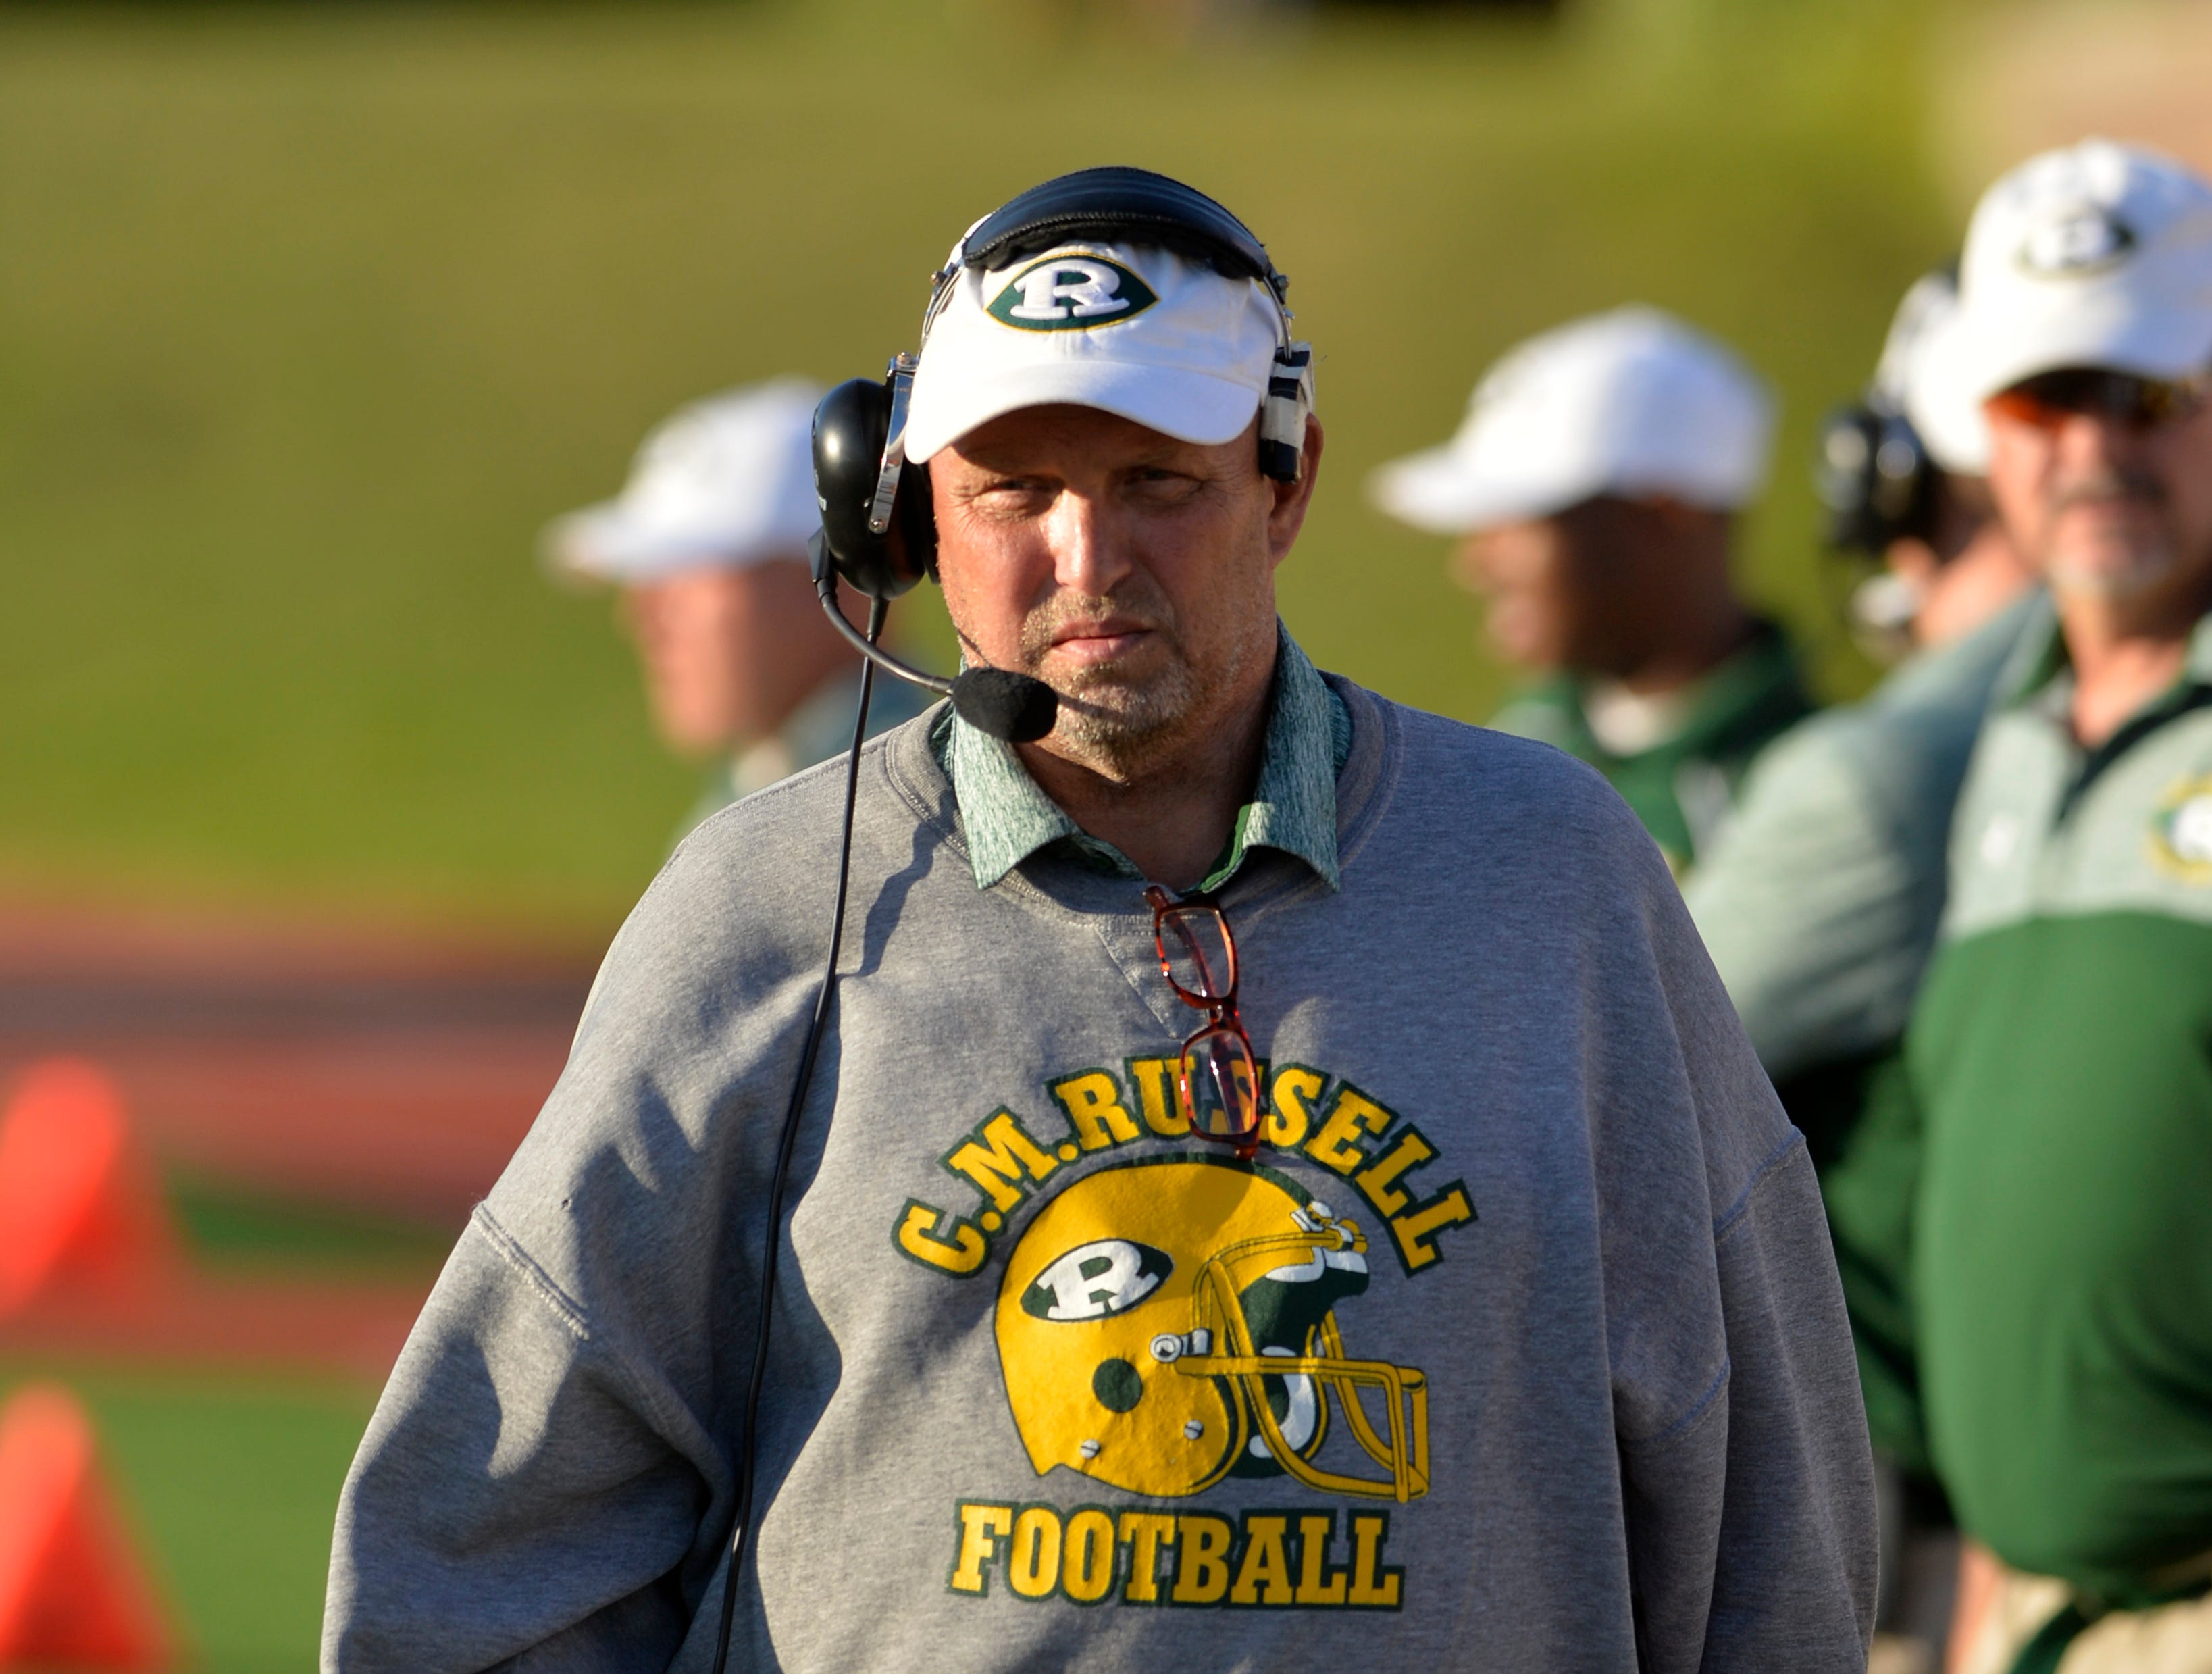 CMR football coach Gary Lowry walks the sideline during Friday's football game against Glacier at Memorial Stadium, August 31, 2018.